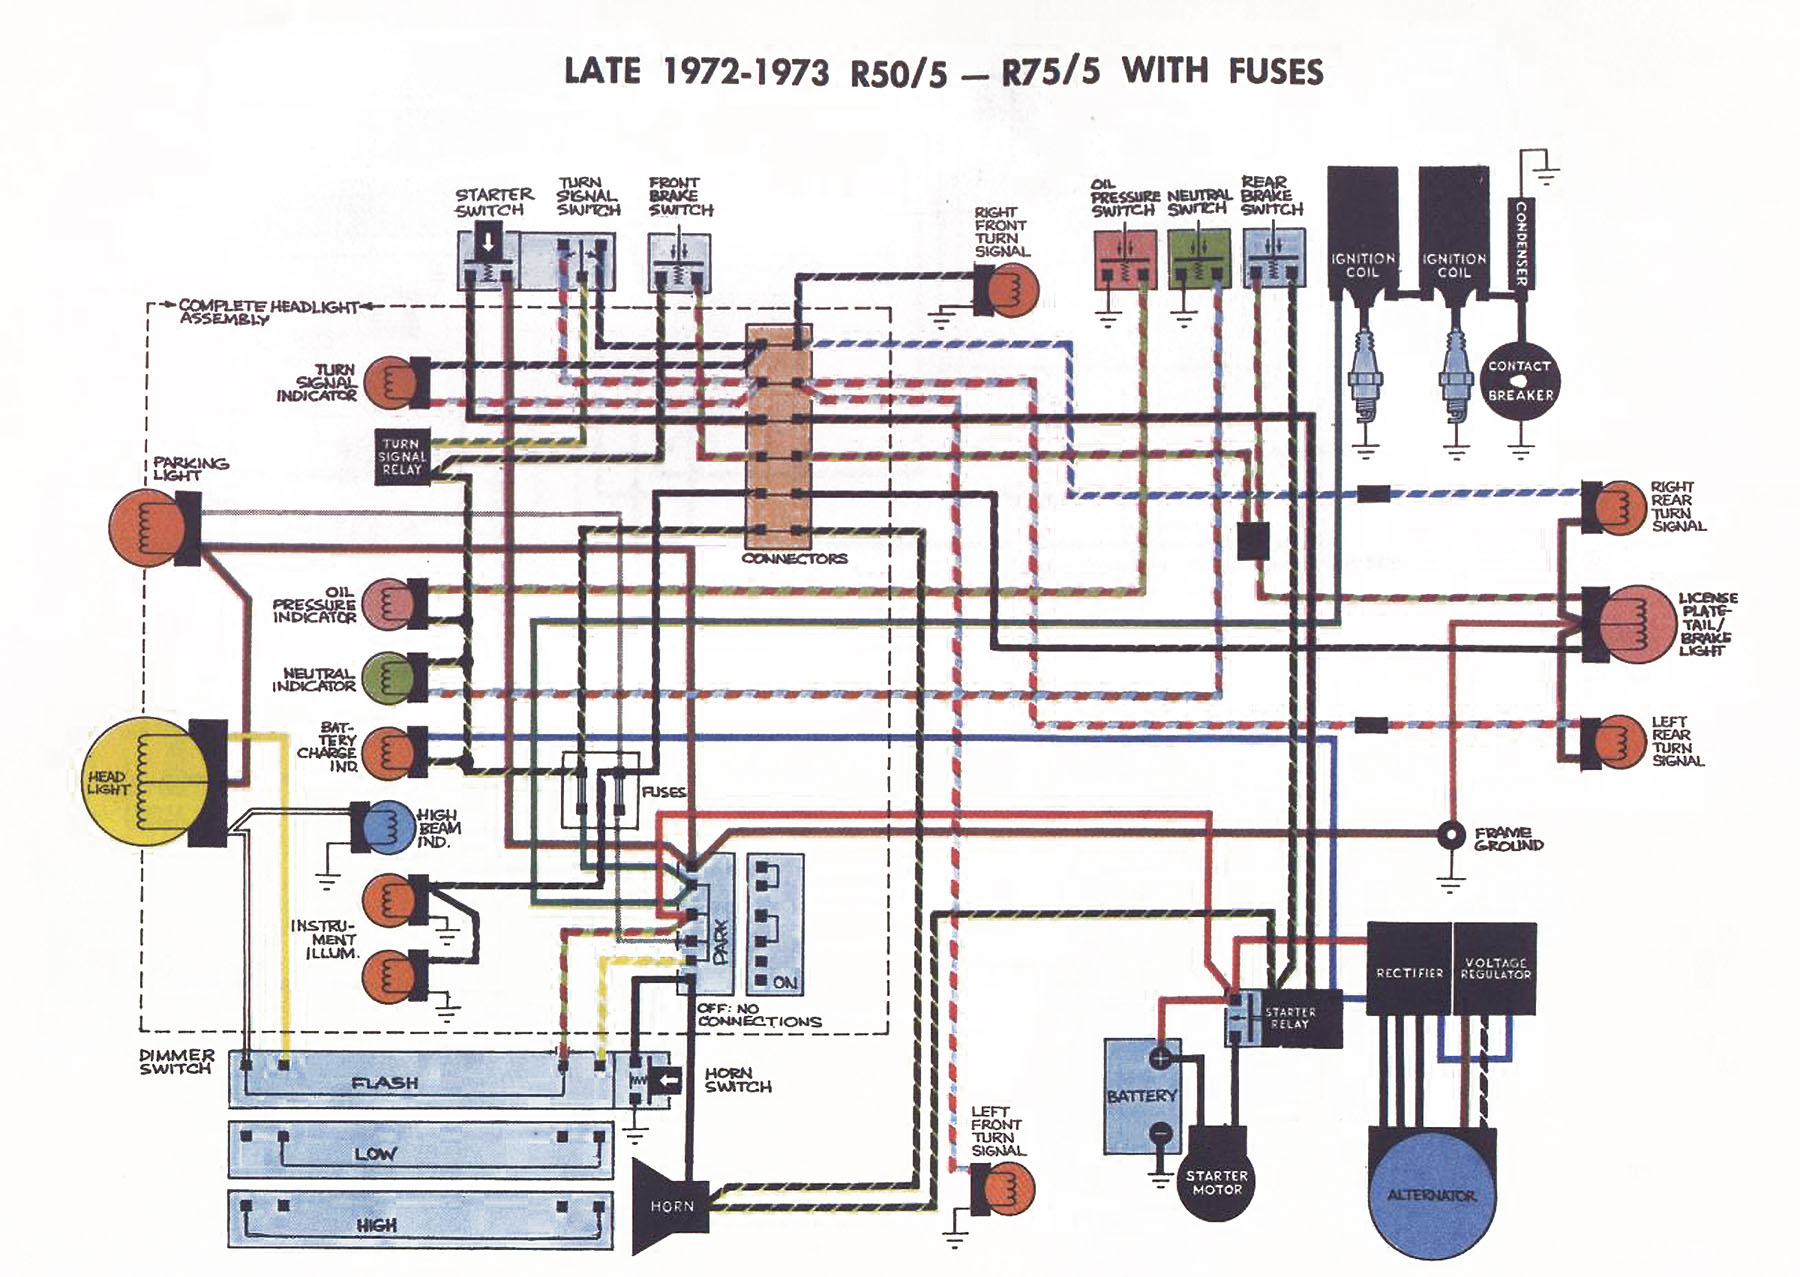 Incredible Bmw R75 Wiring Diagram Wiring Library Wiring Digital Resources Indicompassionincorg